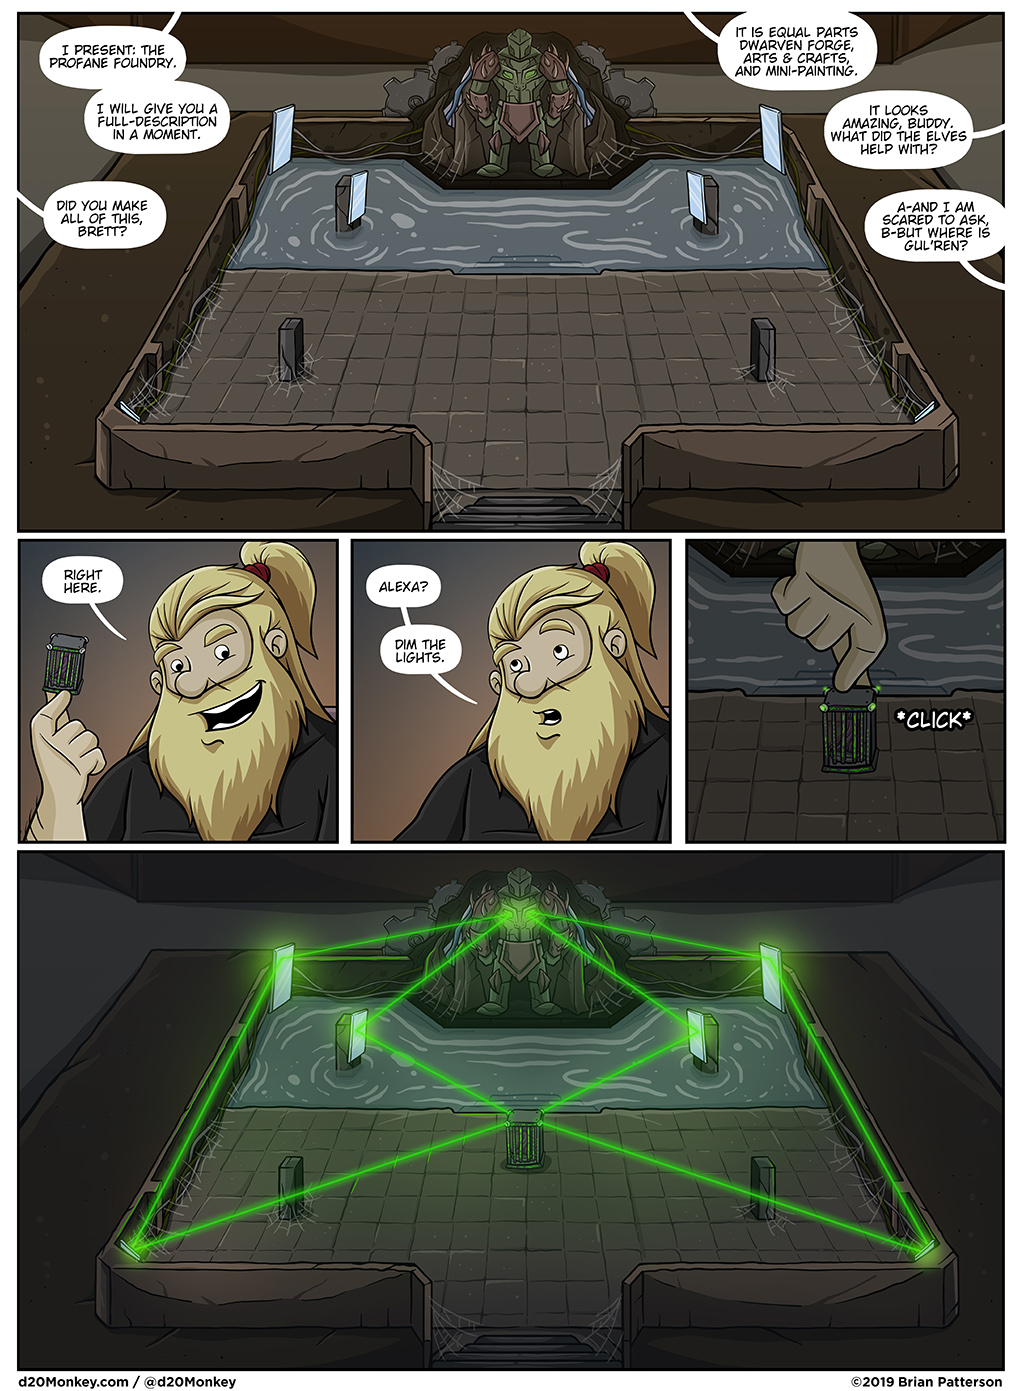 Make the lightsaber sound in the last panel. It really makes it.